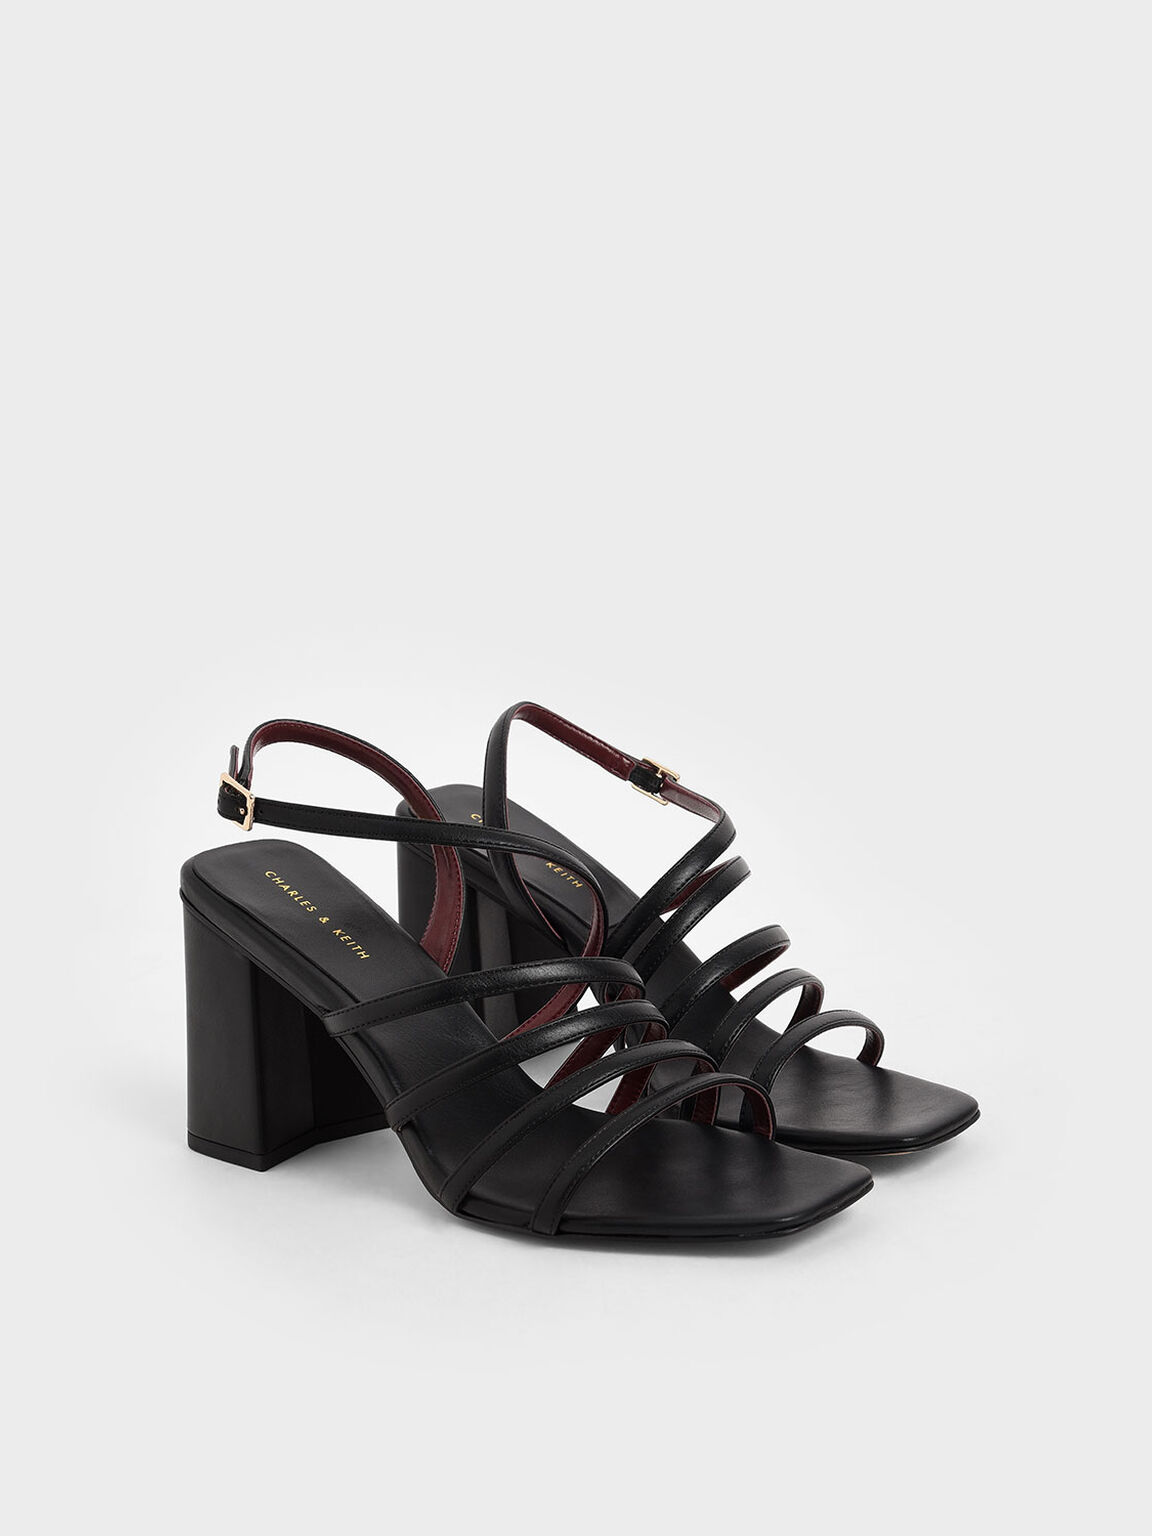 Strappy Chunky Heel Sandals, Black, hi-res